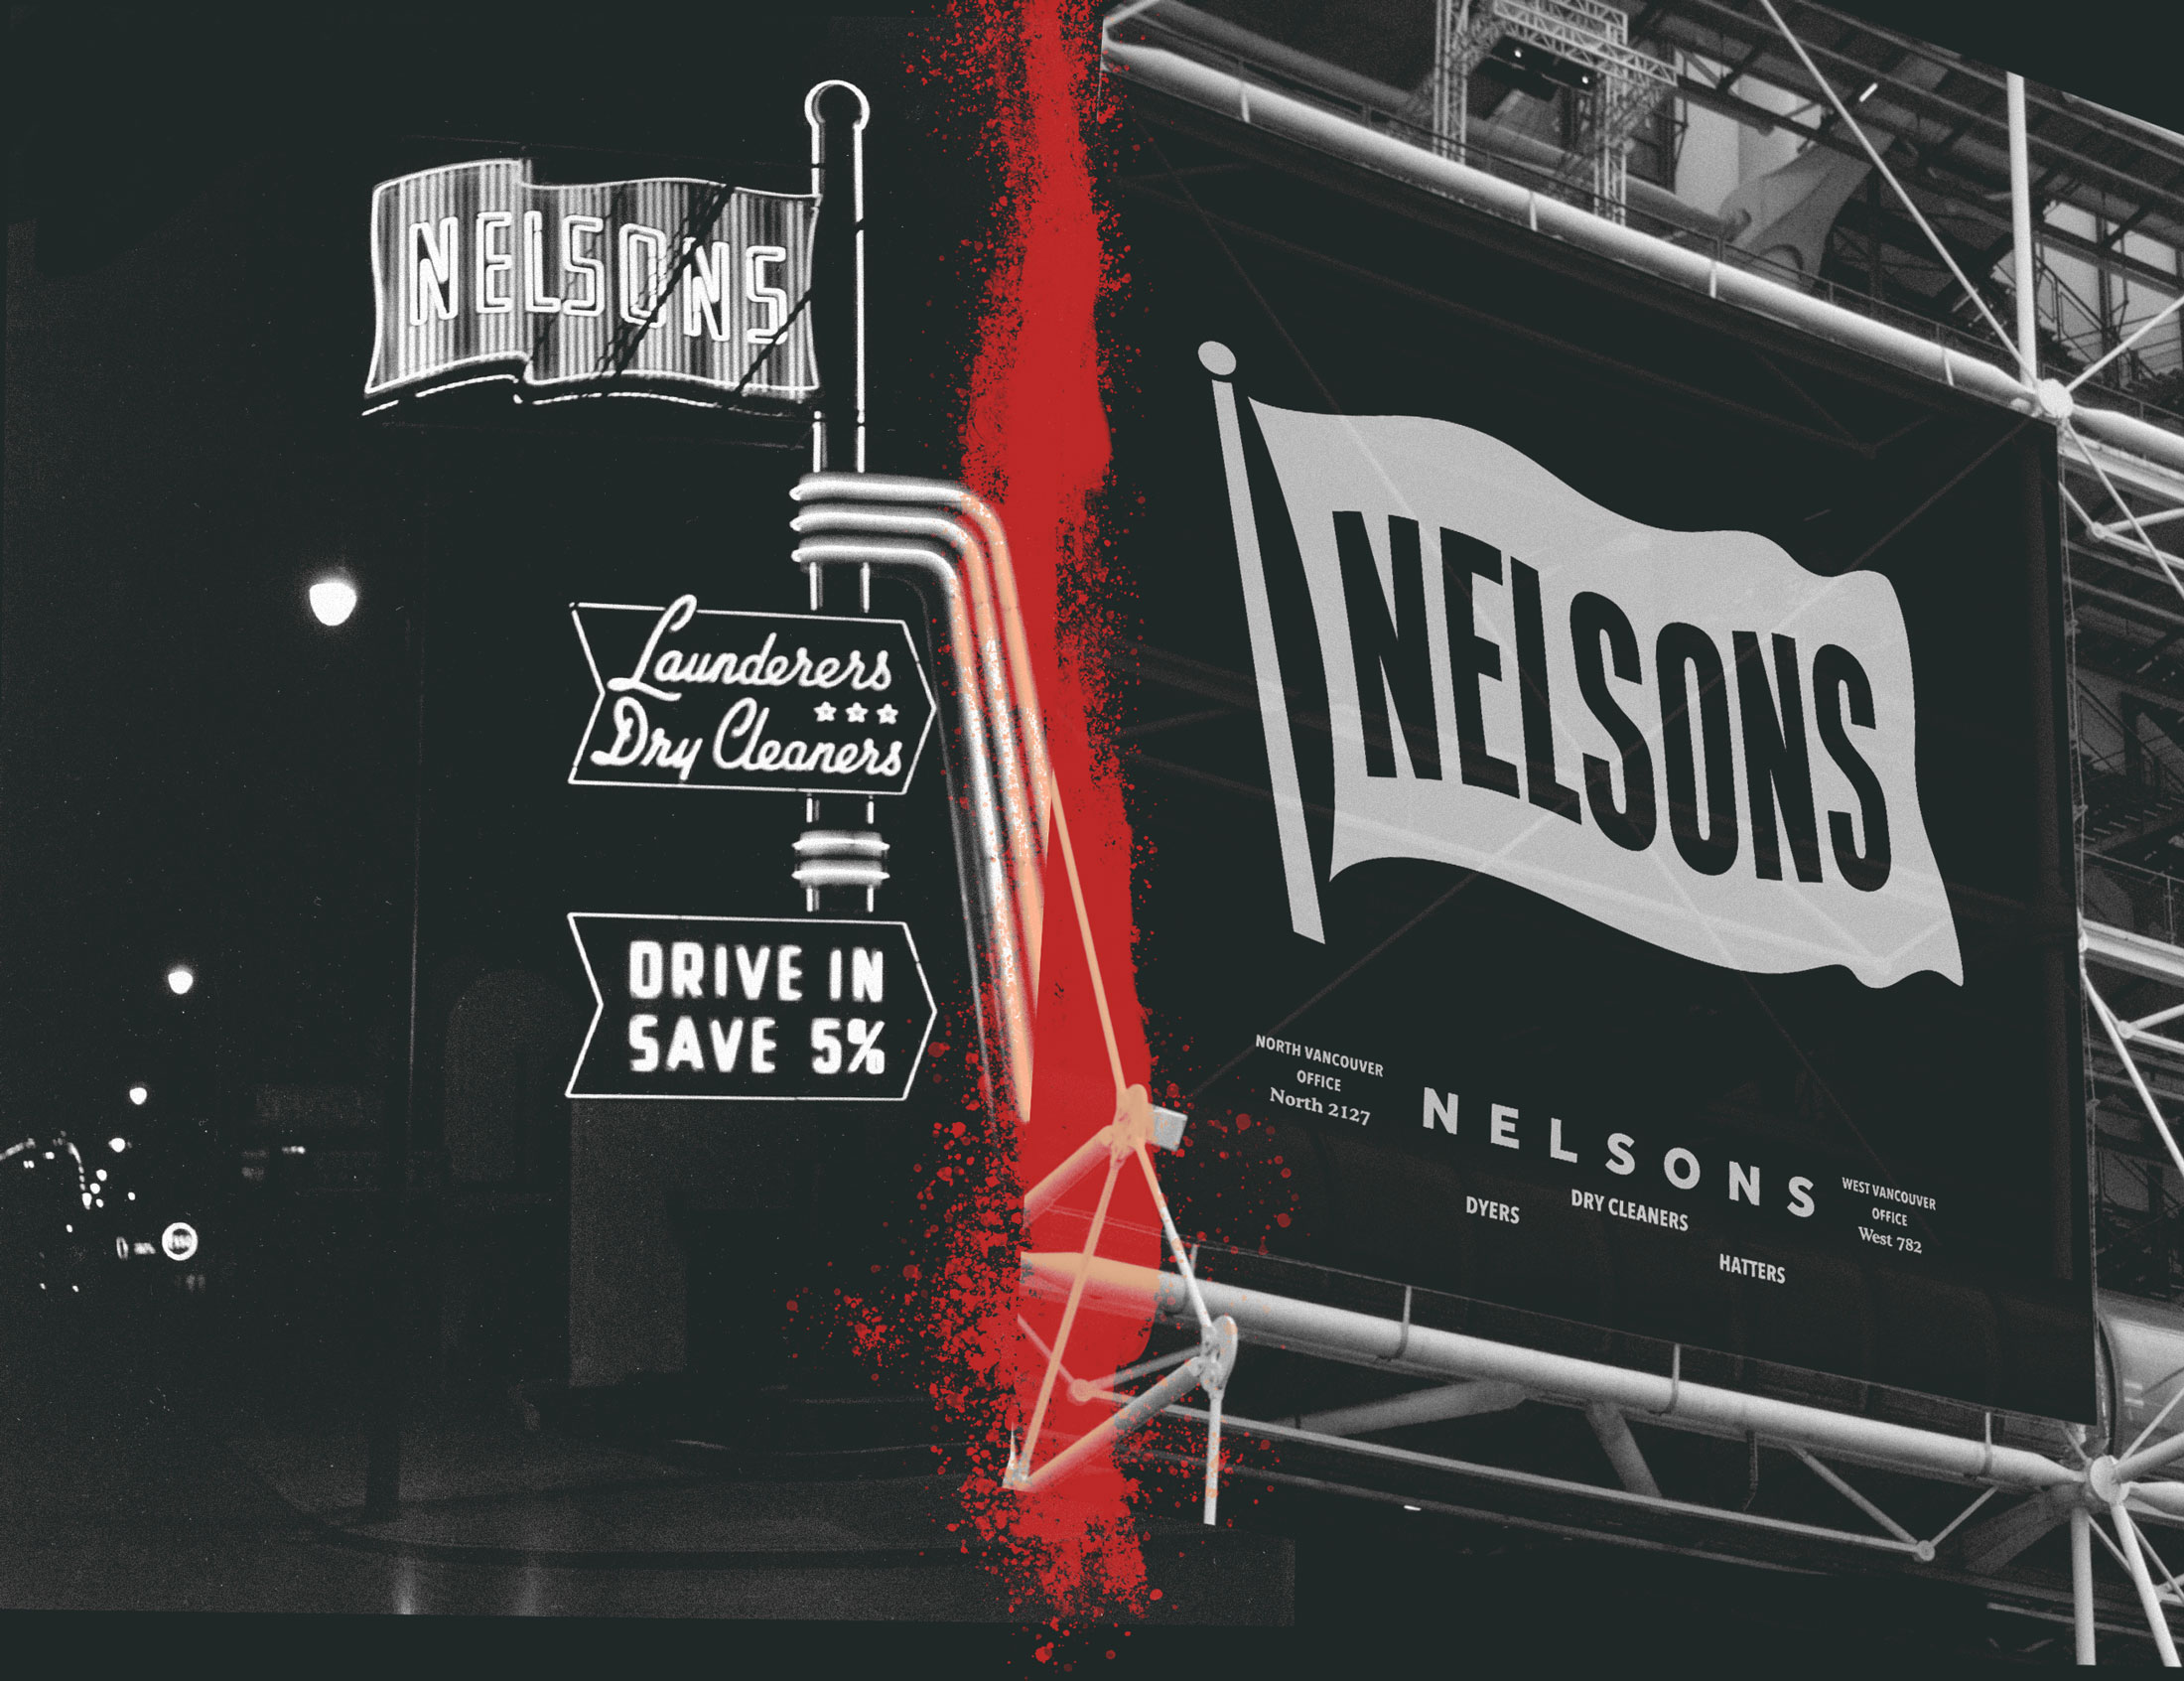 Nelsons Laundries